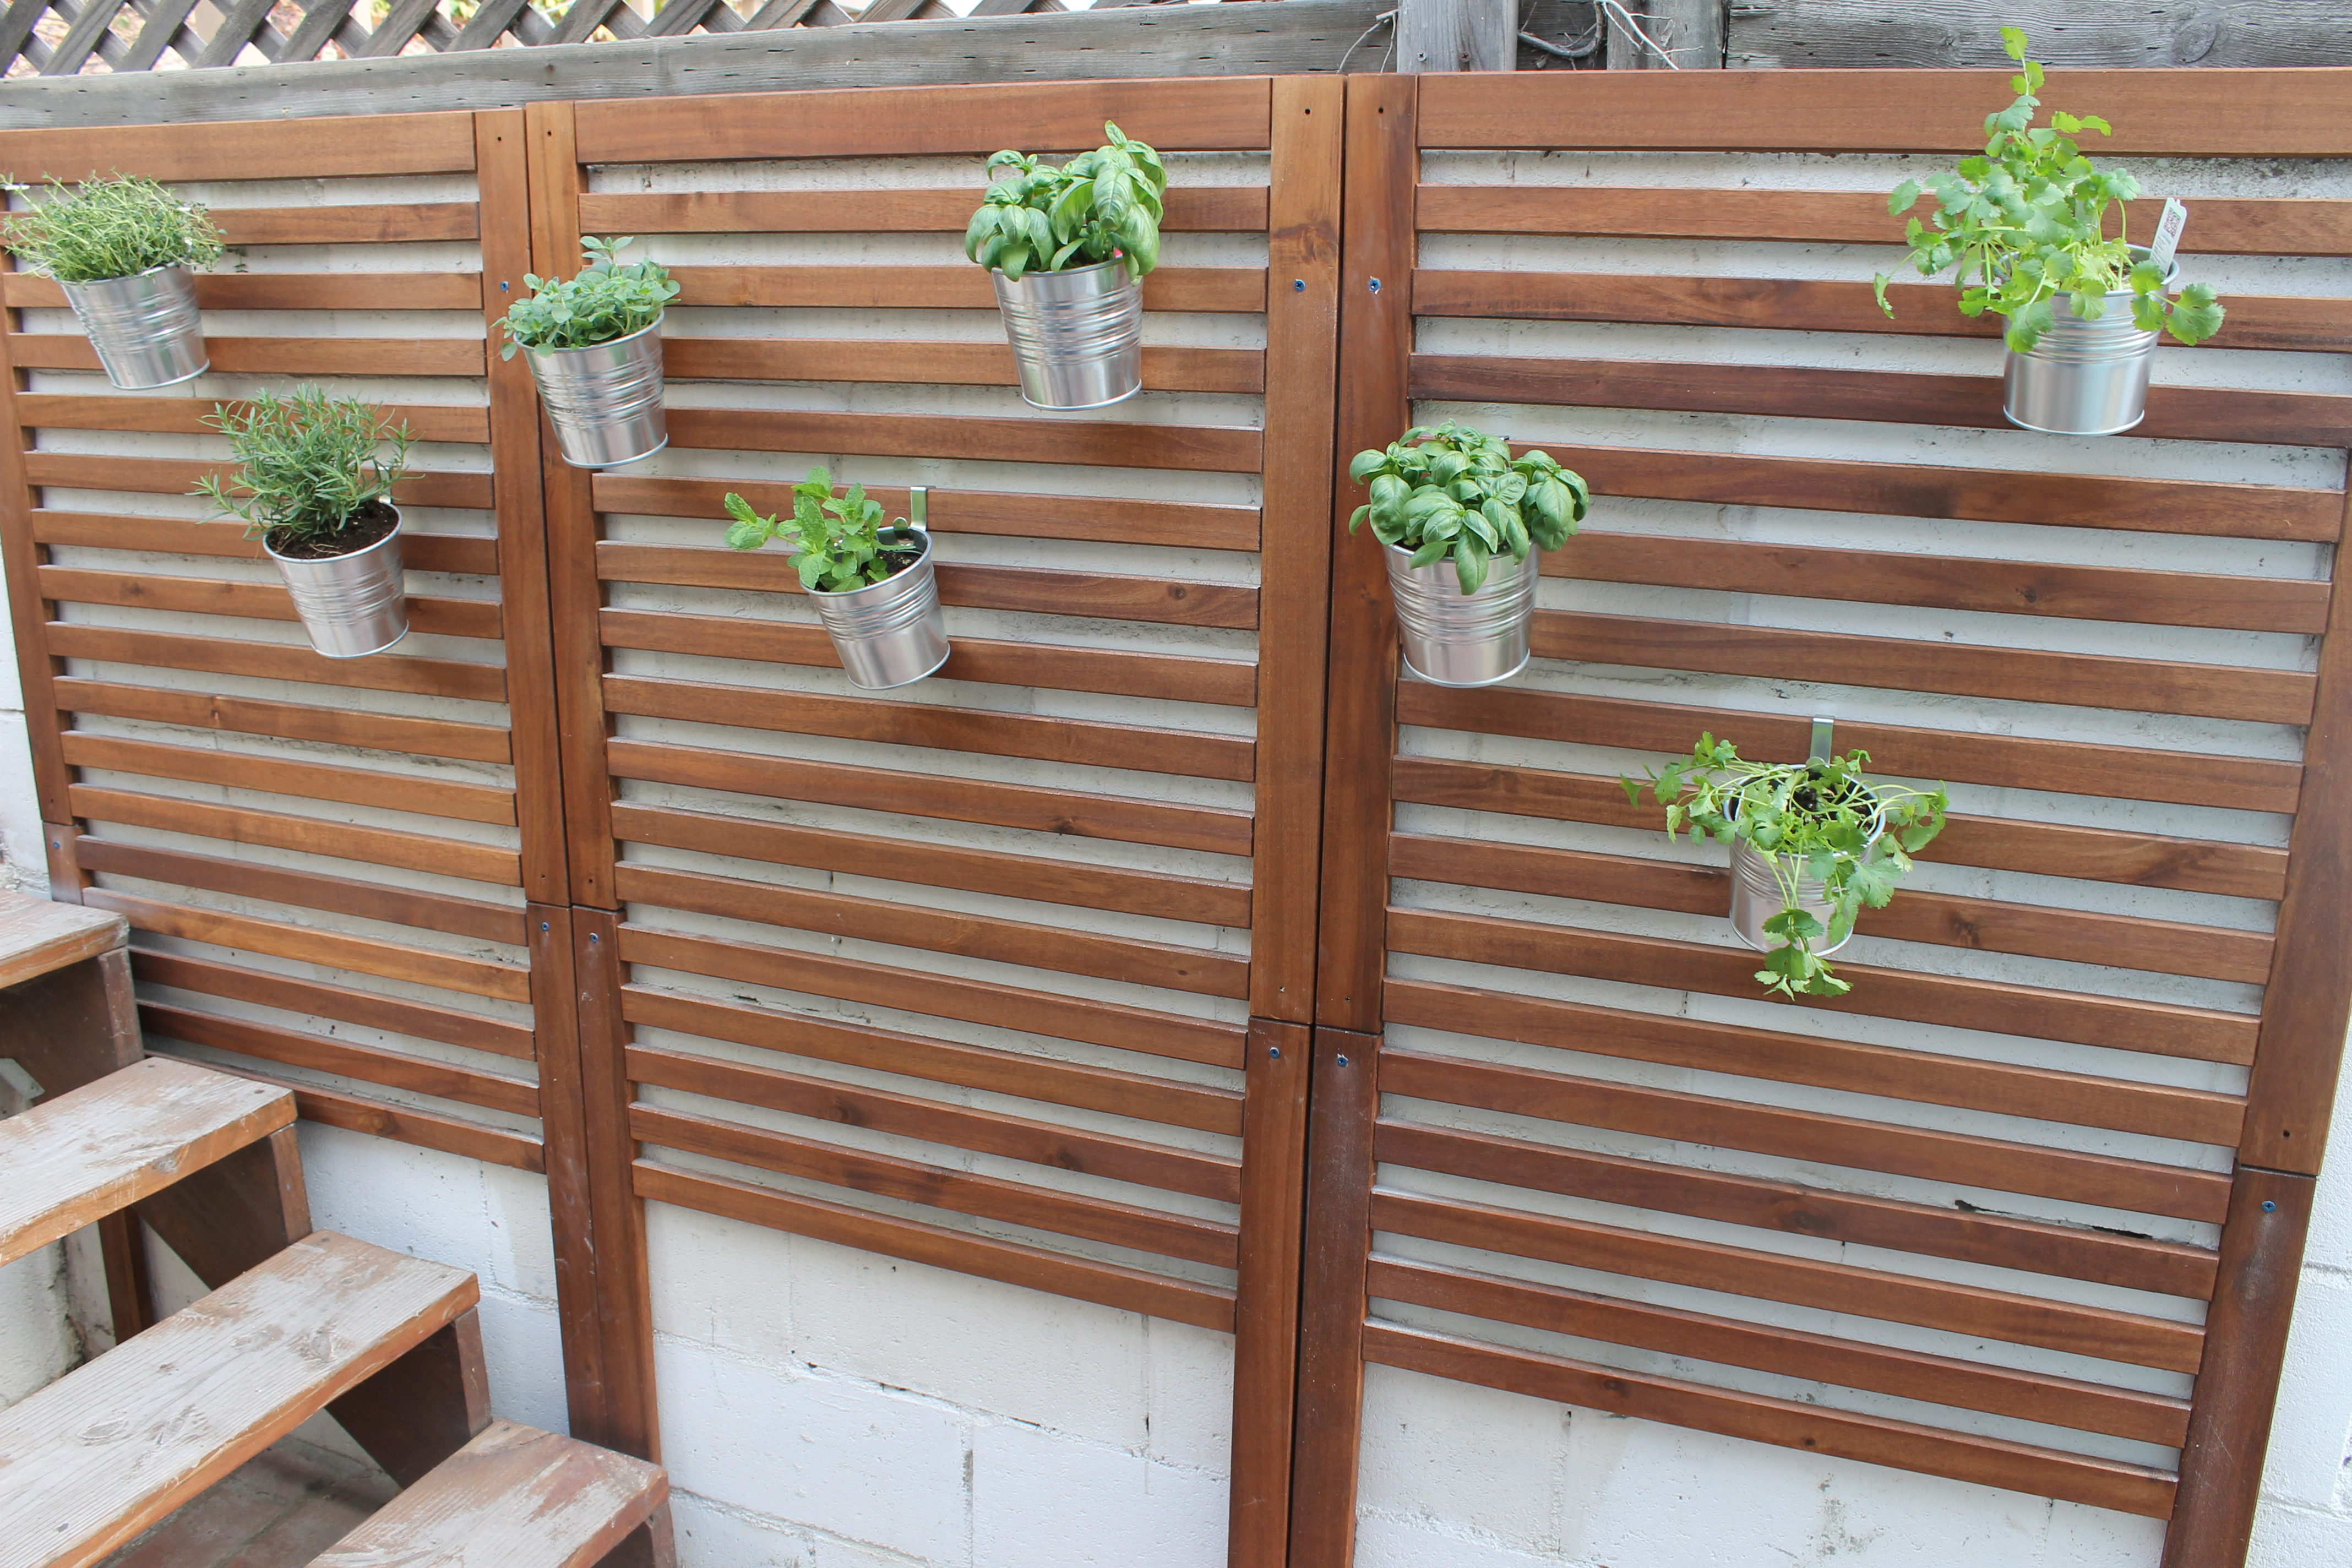 Ikea Herb Planters Weekend Project Patio Garden